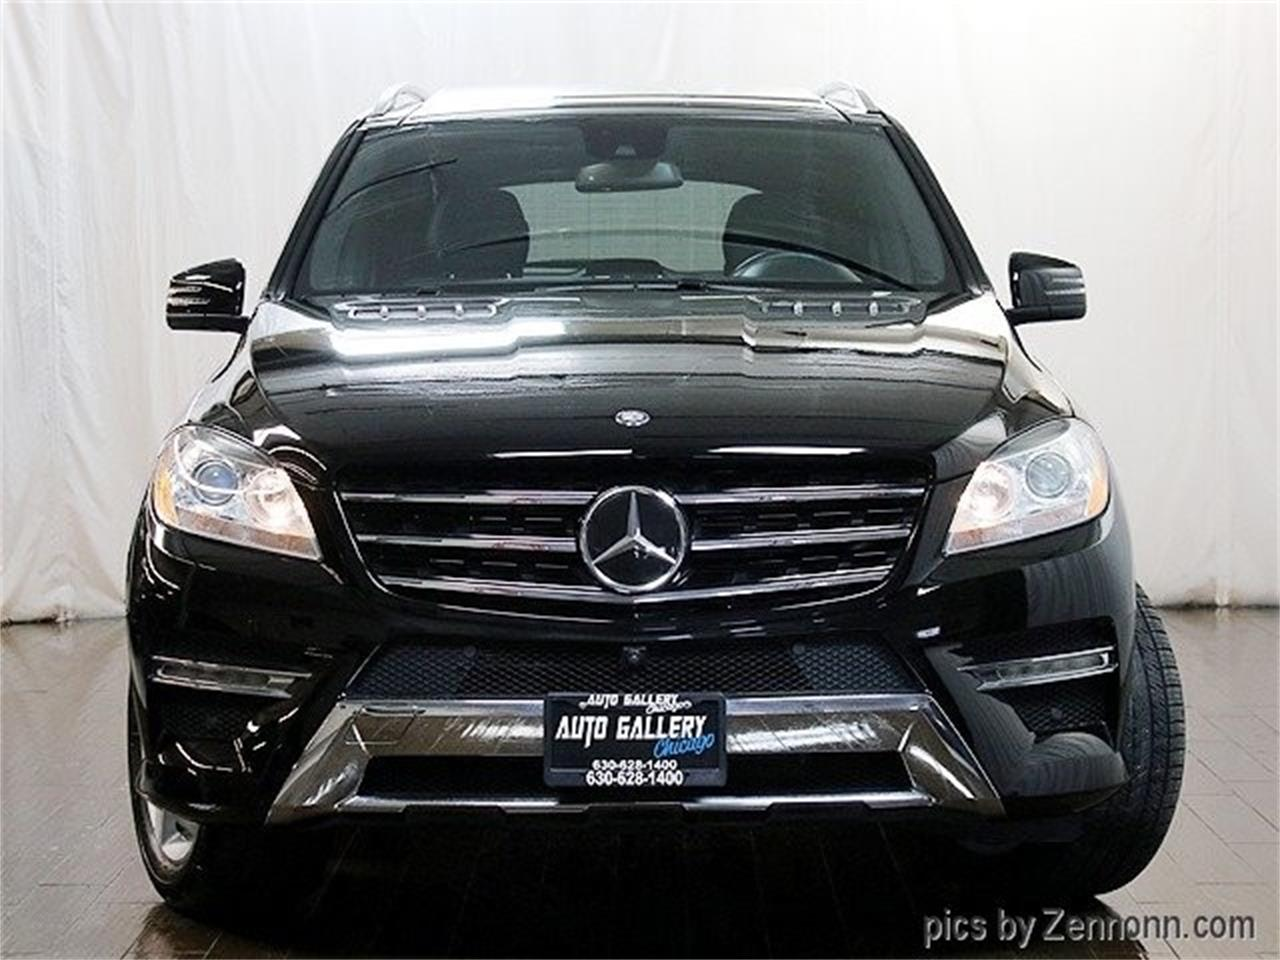 2014 Mercedes-Benz ML350 for sale in Addison, IL – photo 5